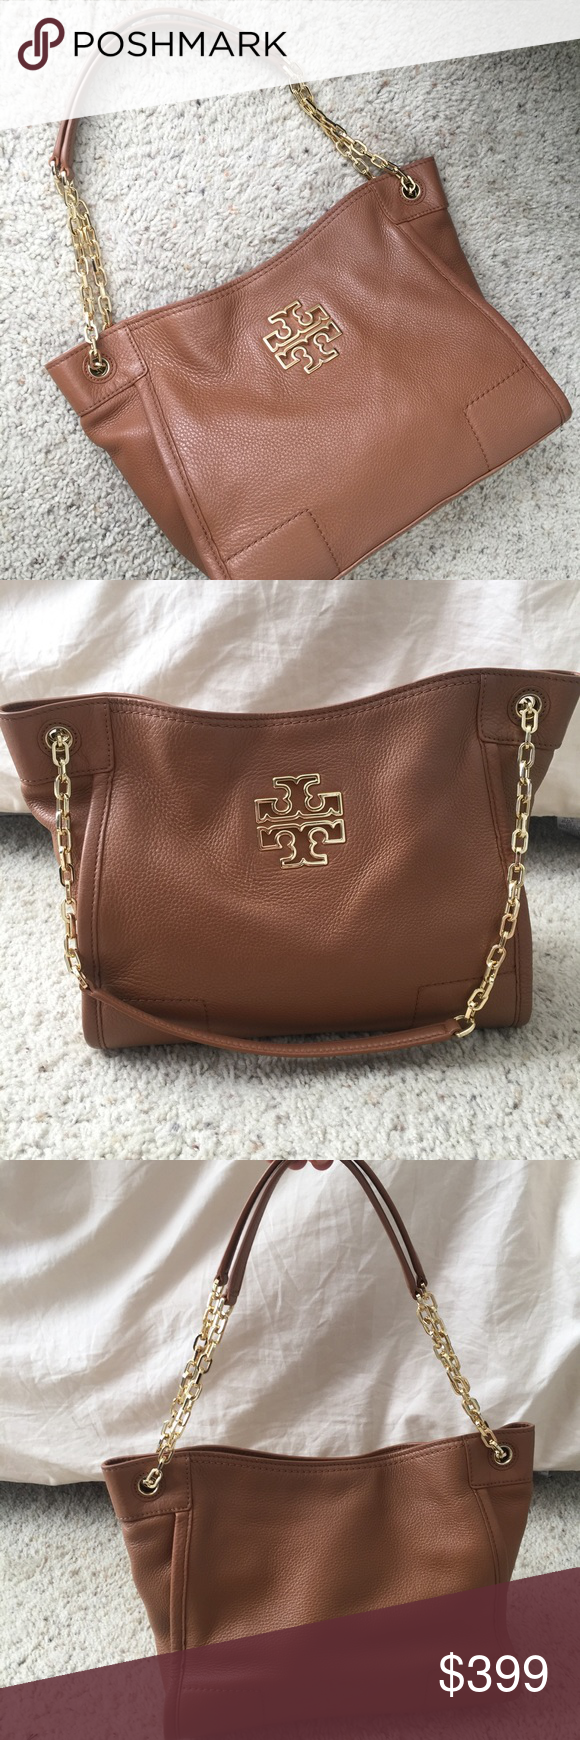 1cf083e50408 Tory Burch Britten Small Slouchy Tote in Bark authentic purchased from the tory  burch website. britten small slouchy bag. worn for a couple months.  gorgeous ...